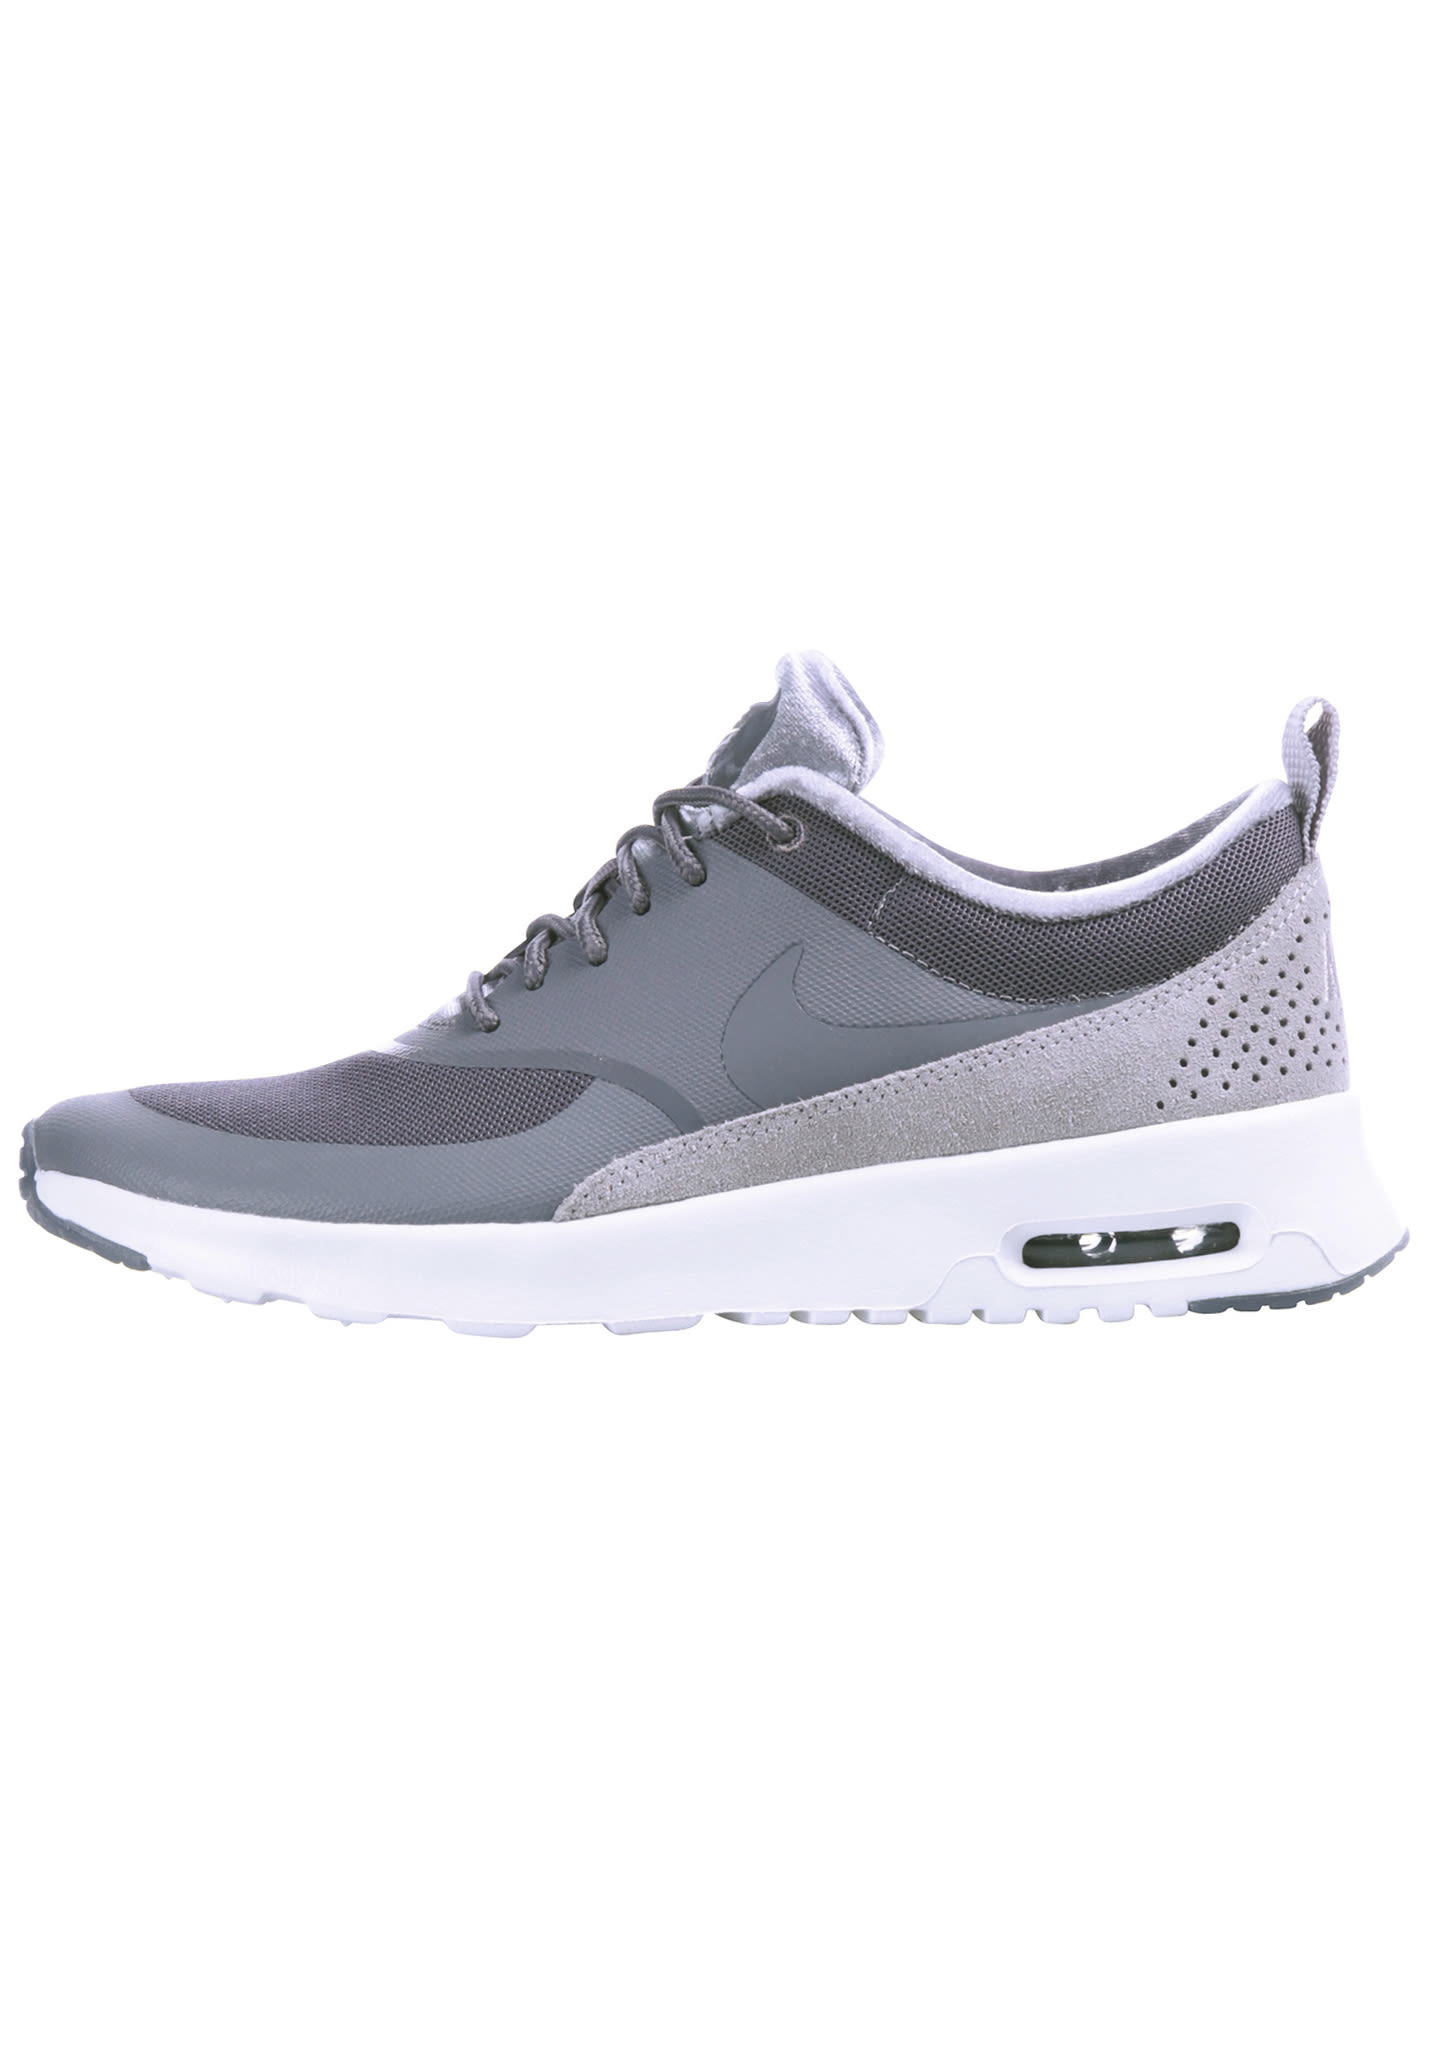 super popular 4d4e8 e0f94 NIKE SPORTSWEAR Air Max Thea LX - Sneaker für Damen - Grau - Planet Sports